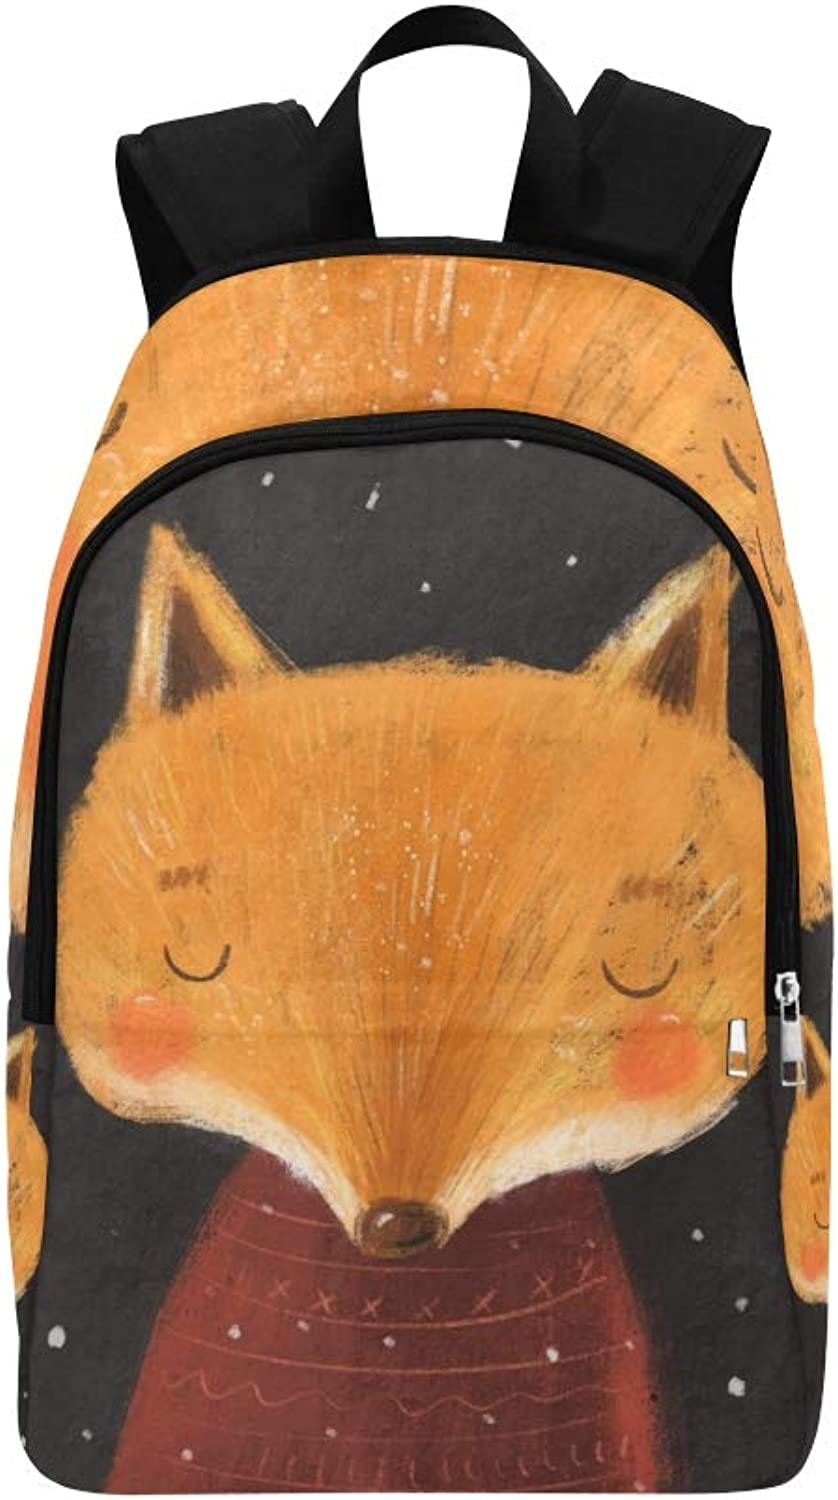 Christmas Cartoon Animals Character Winter Fox Casual Daypack Travel Bag College School Backpack for Mens and Women